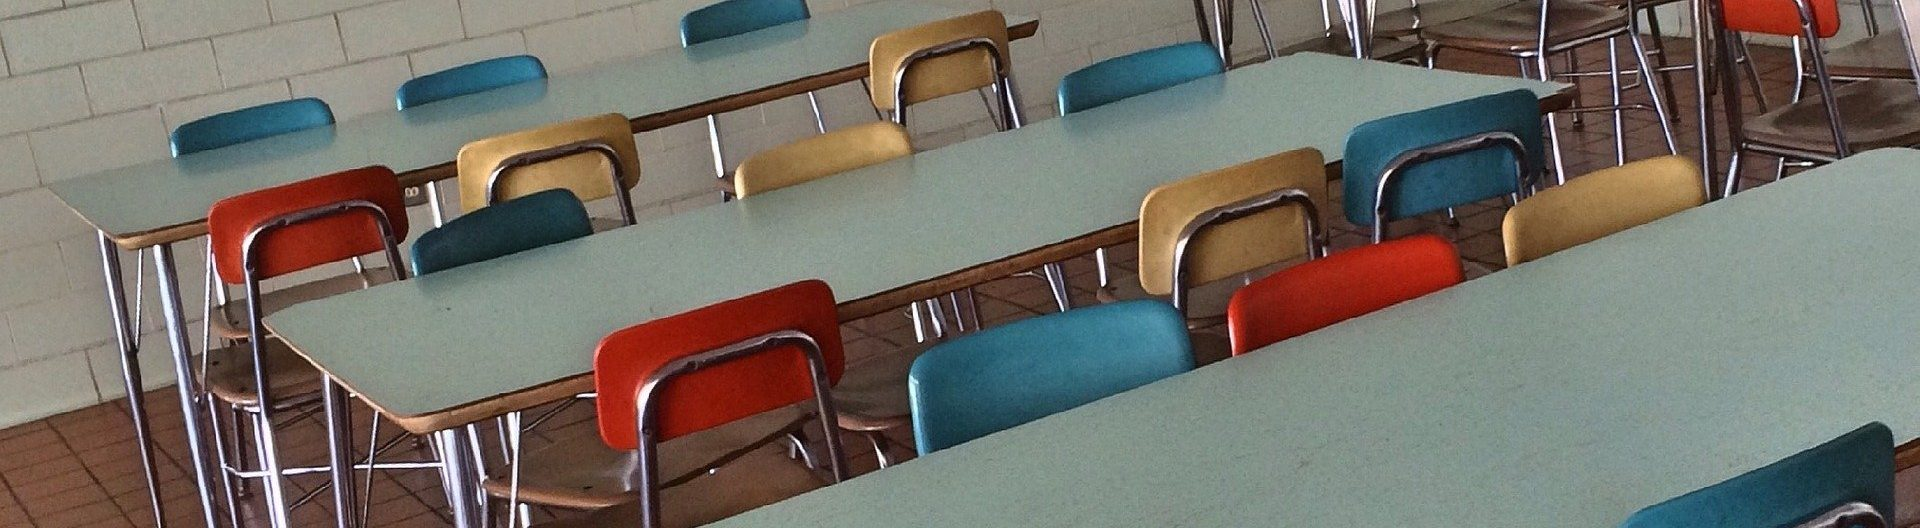 Colorful school chairs and tables